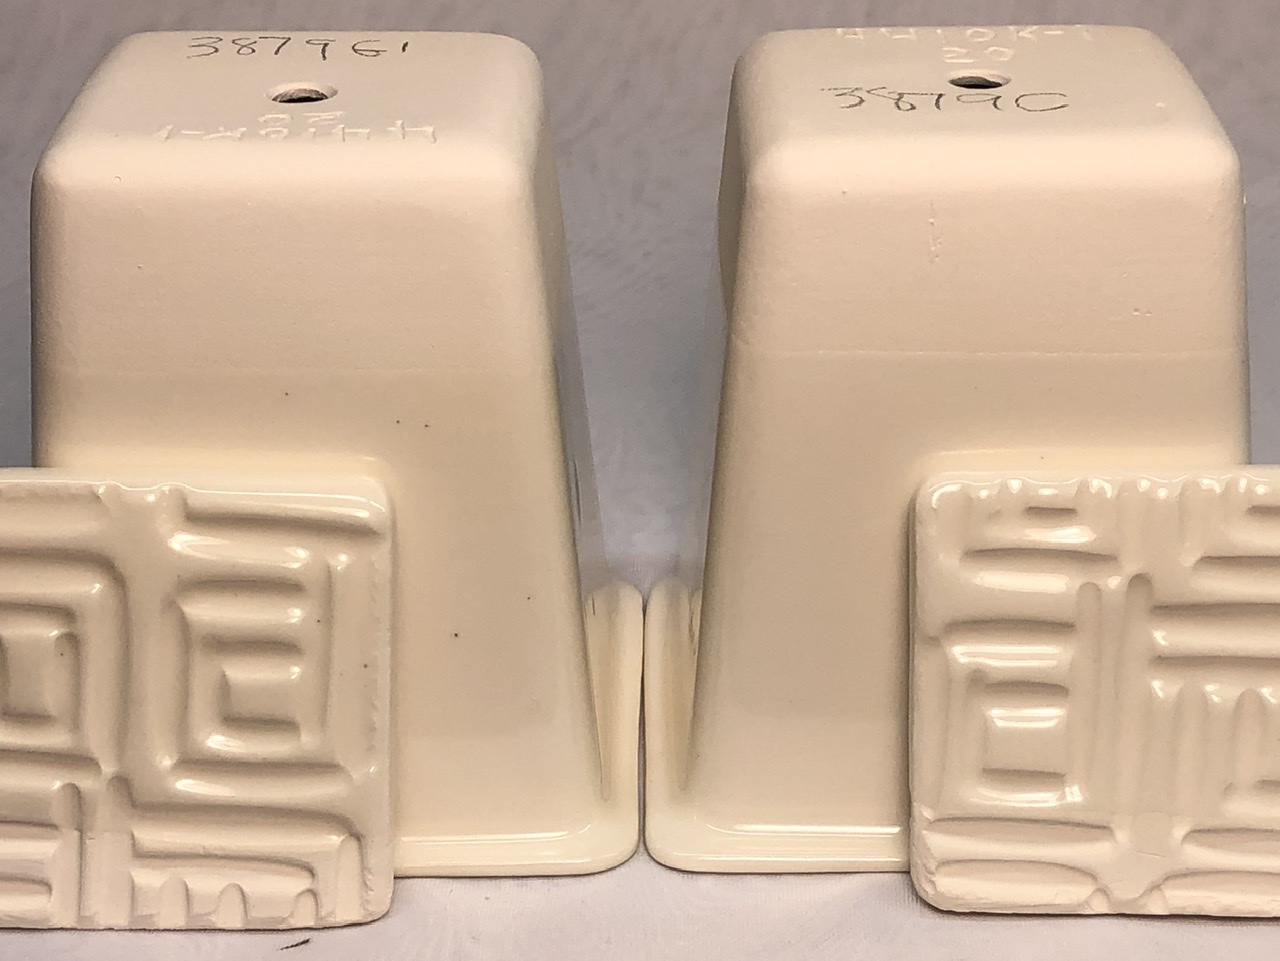 EPK vs NZK in a clear glaze